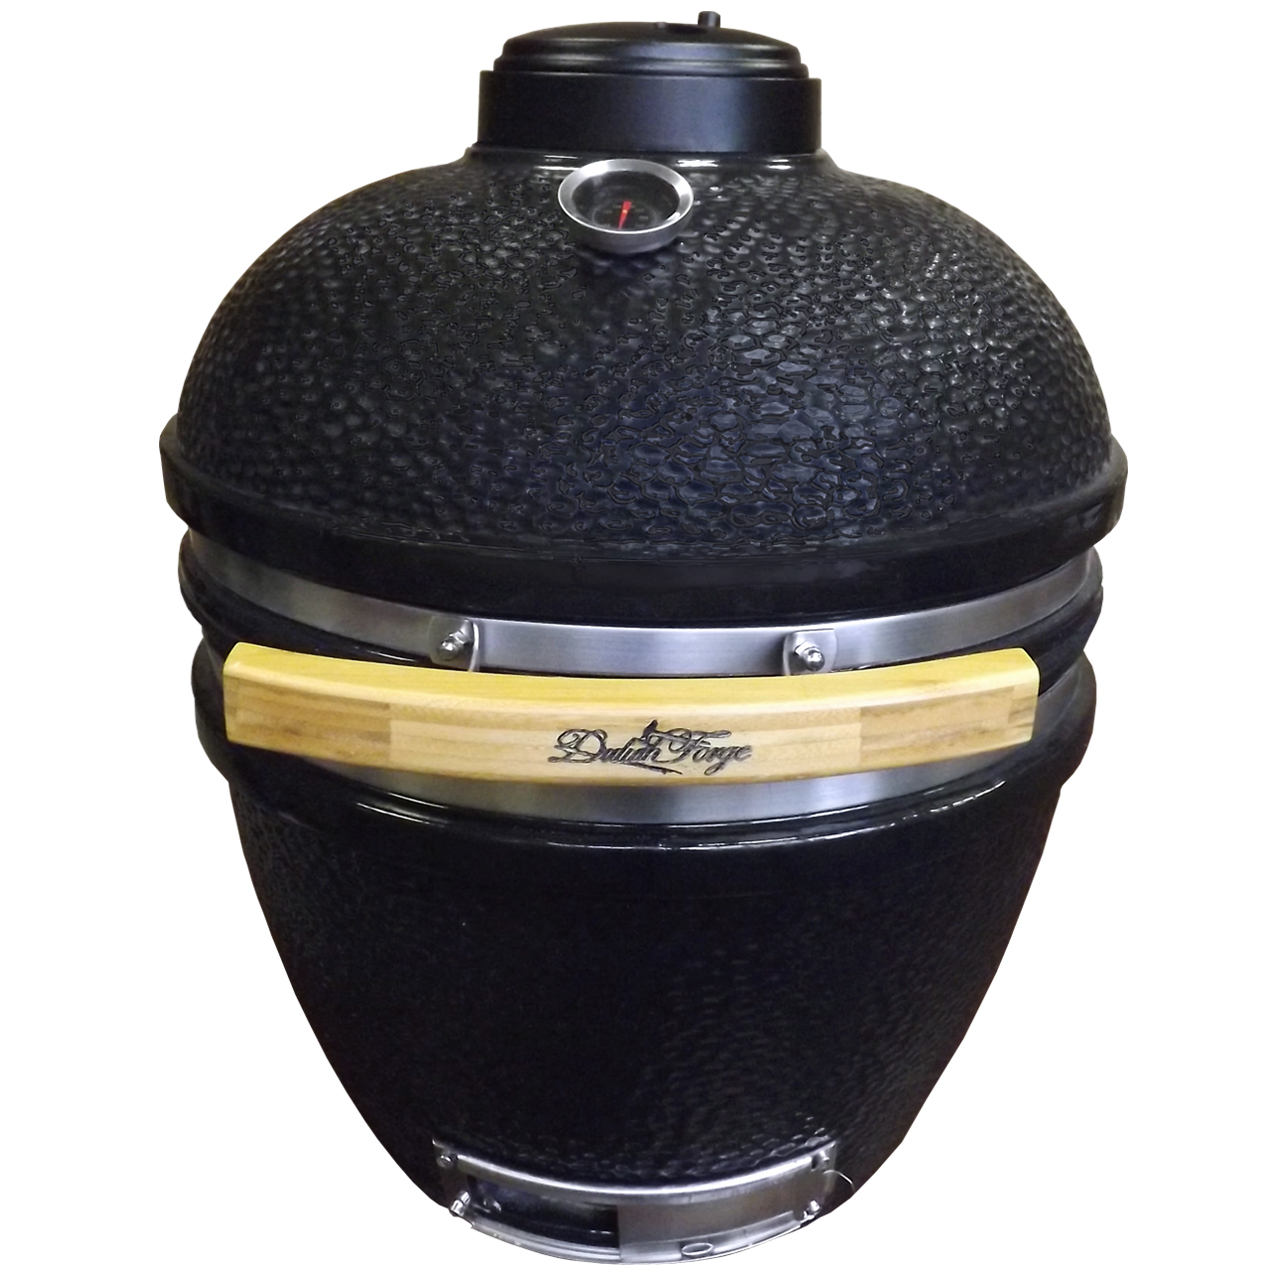 Duluth Forge Ceramic Charcoal Kamado Grill and Smoker - Medium Model